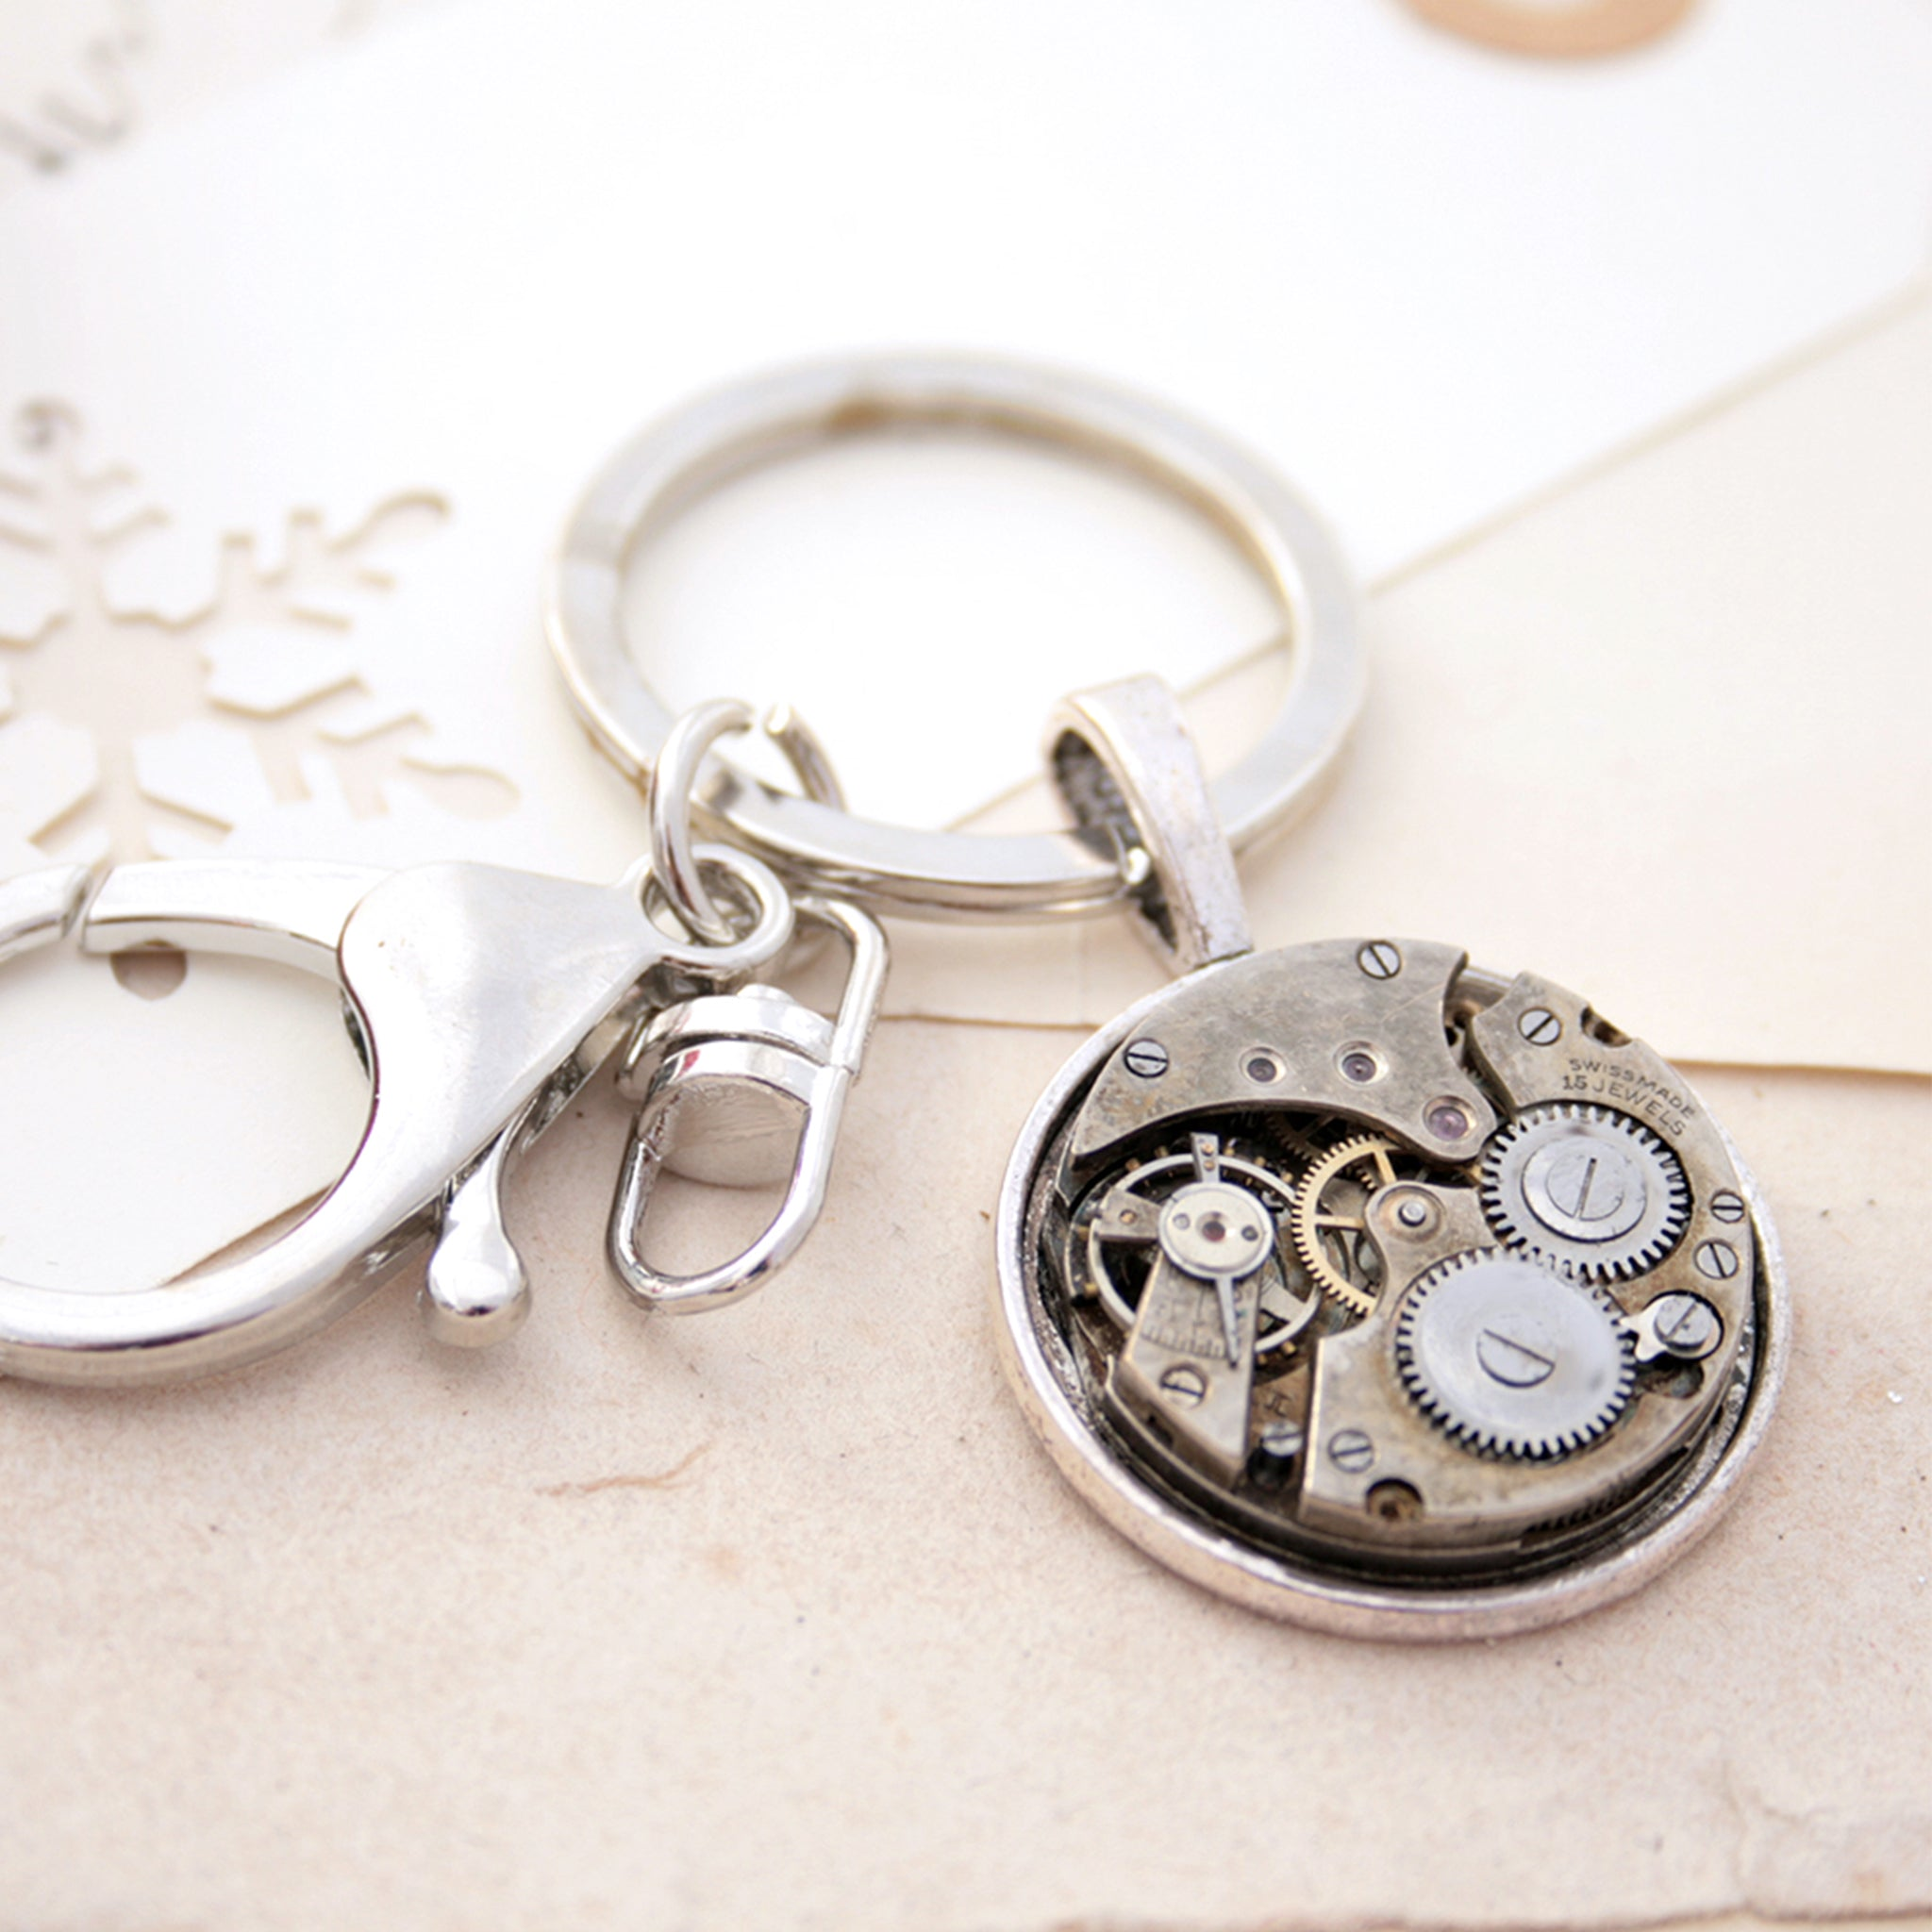 keyrings for car keys with steampunk watch